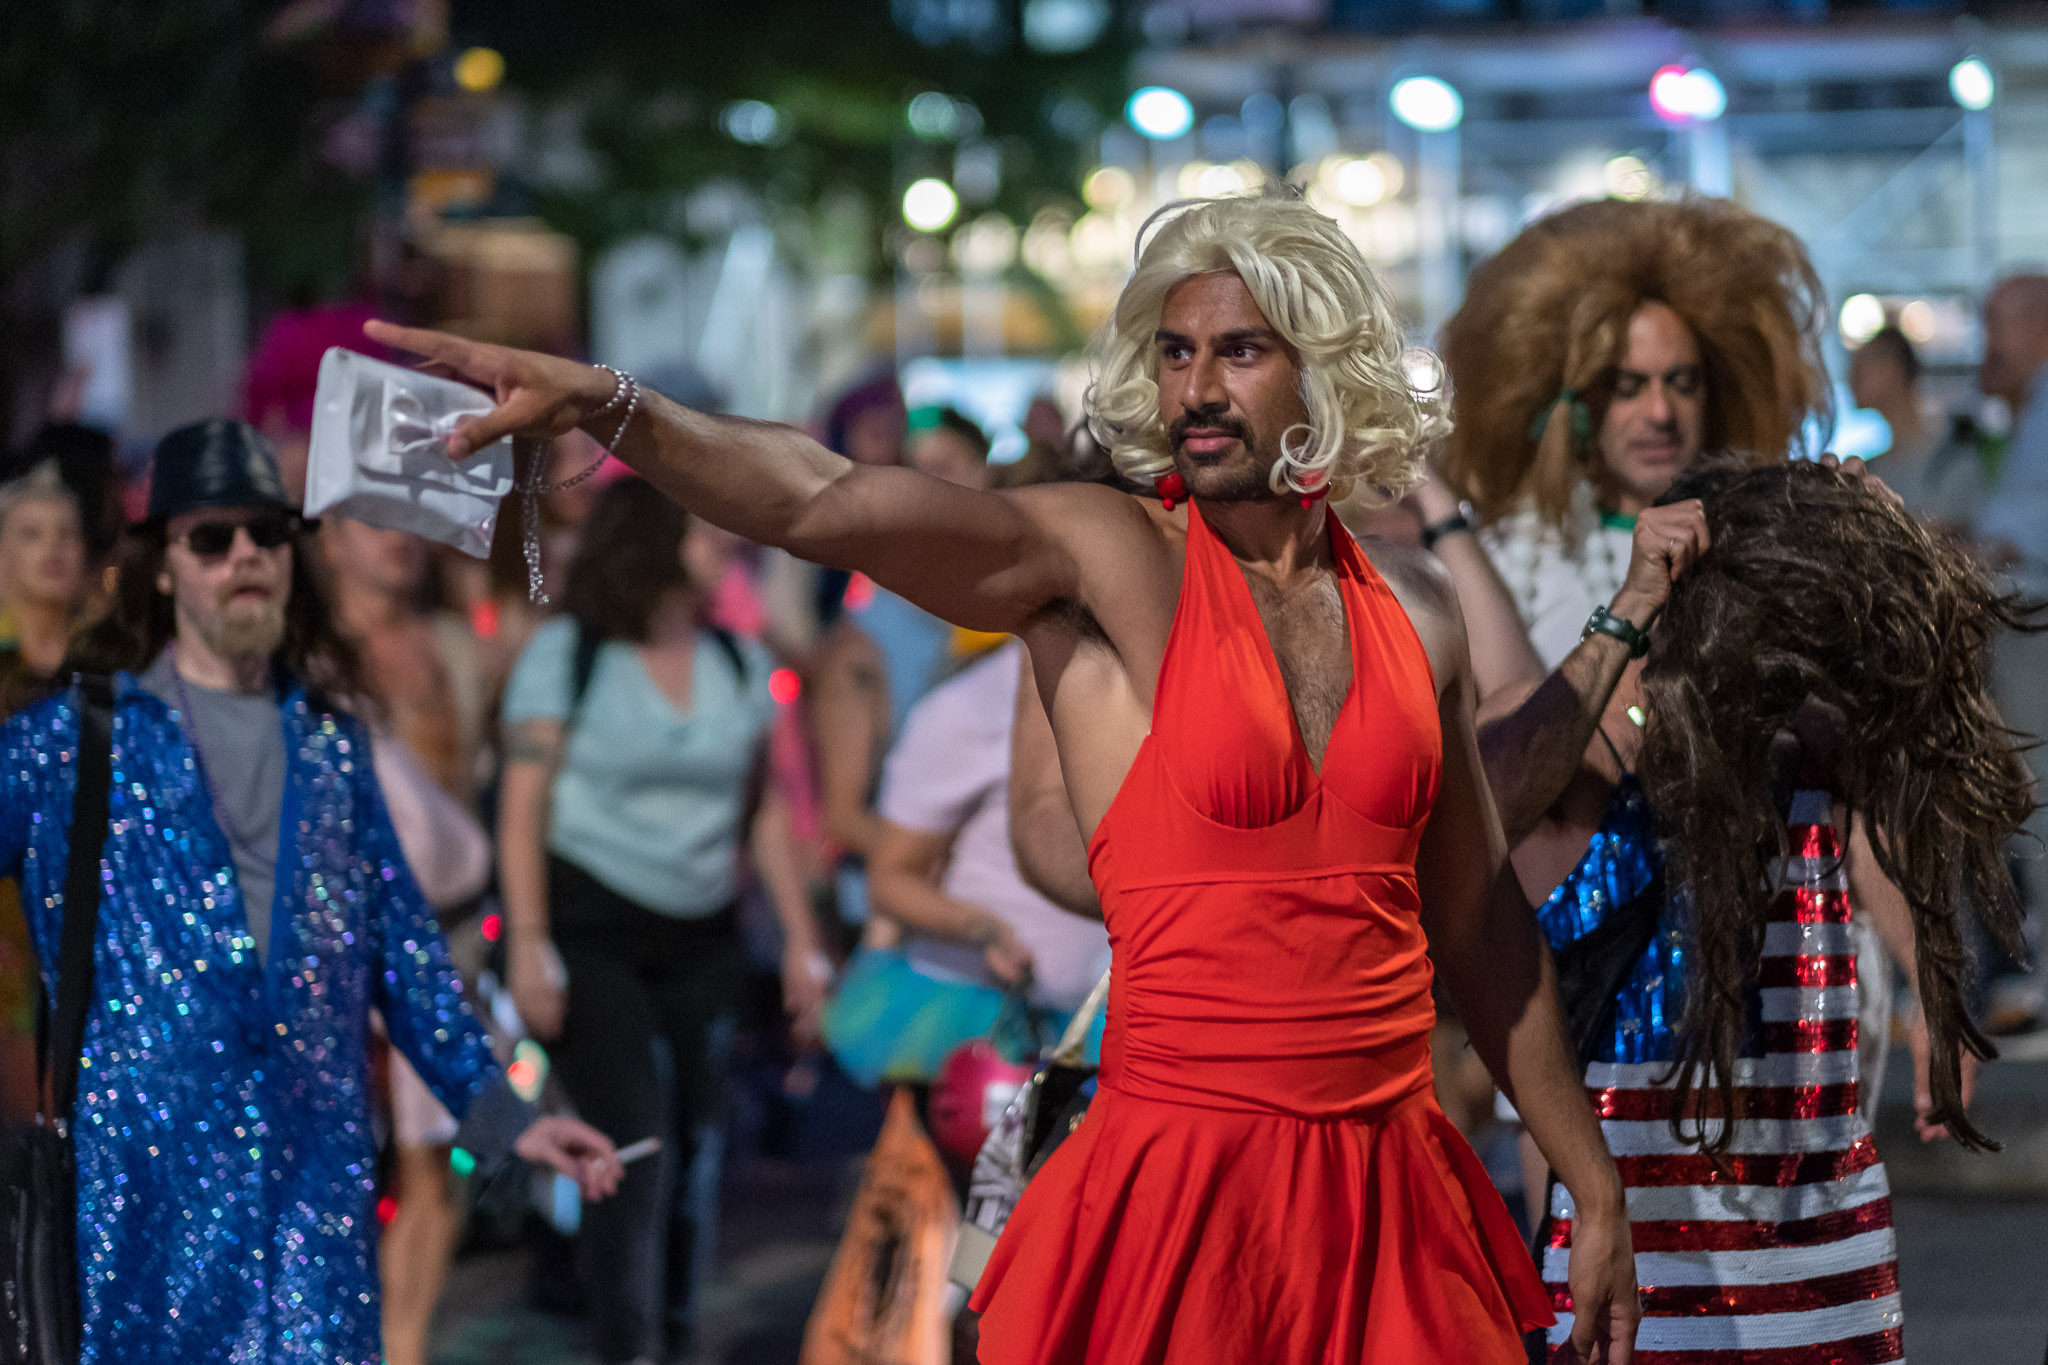 It's Still Just a Drag March (You May Applaud)